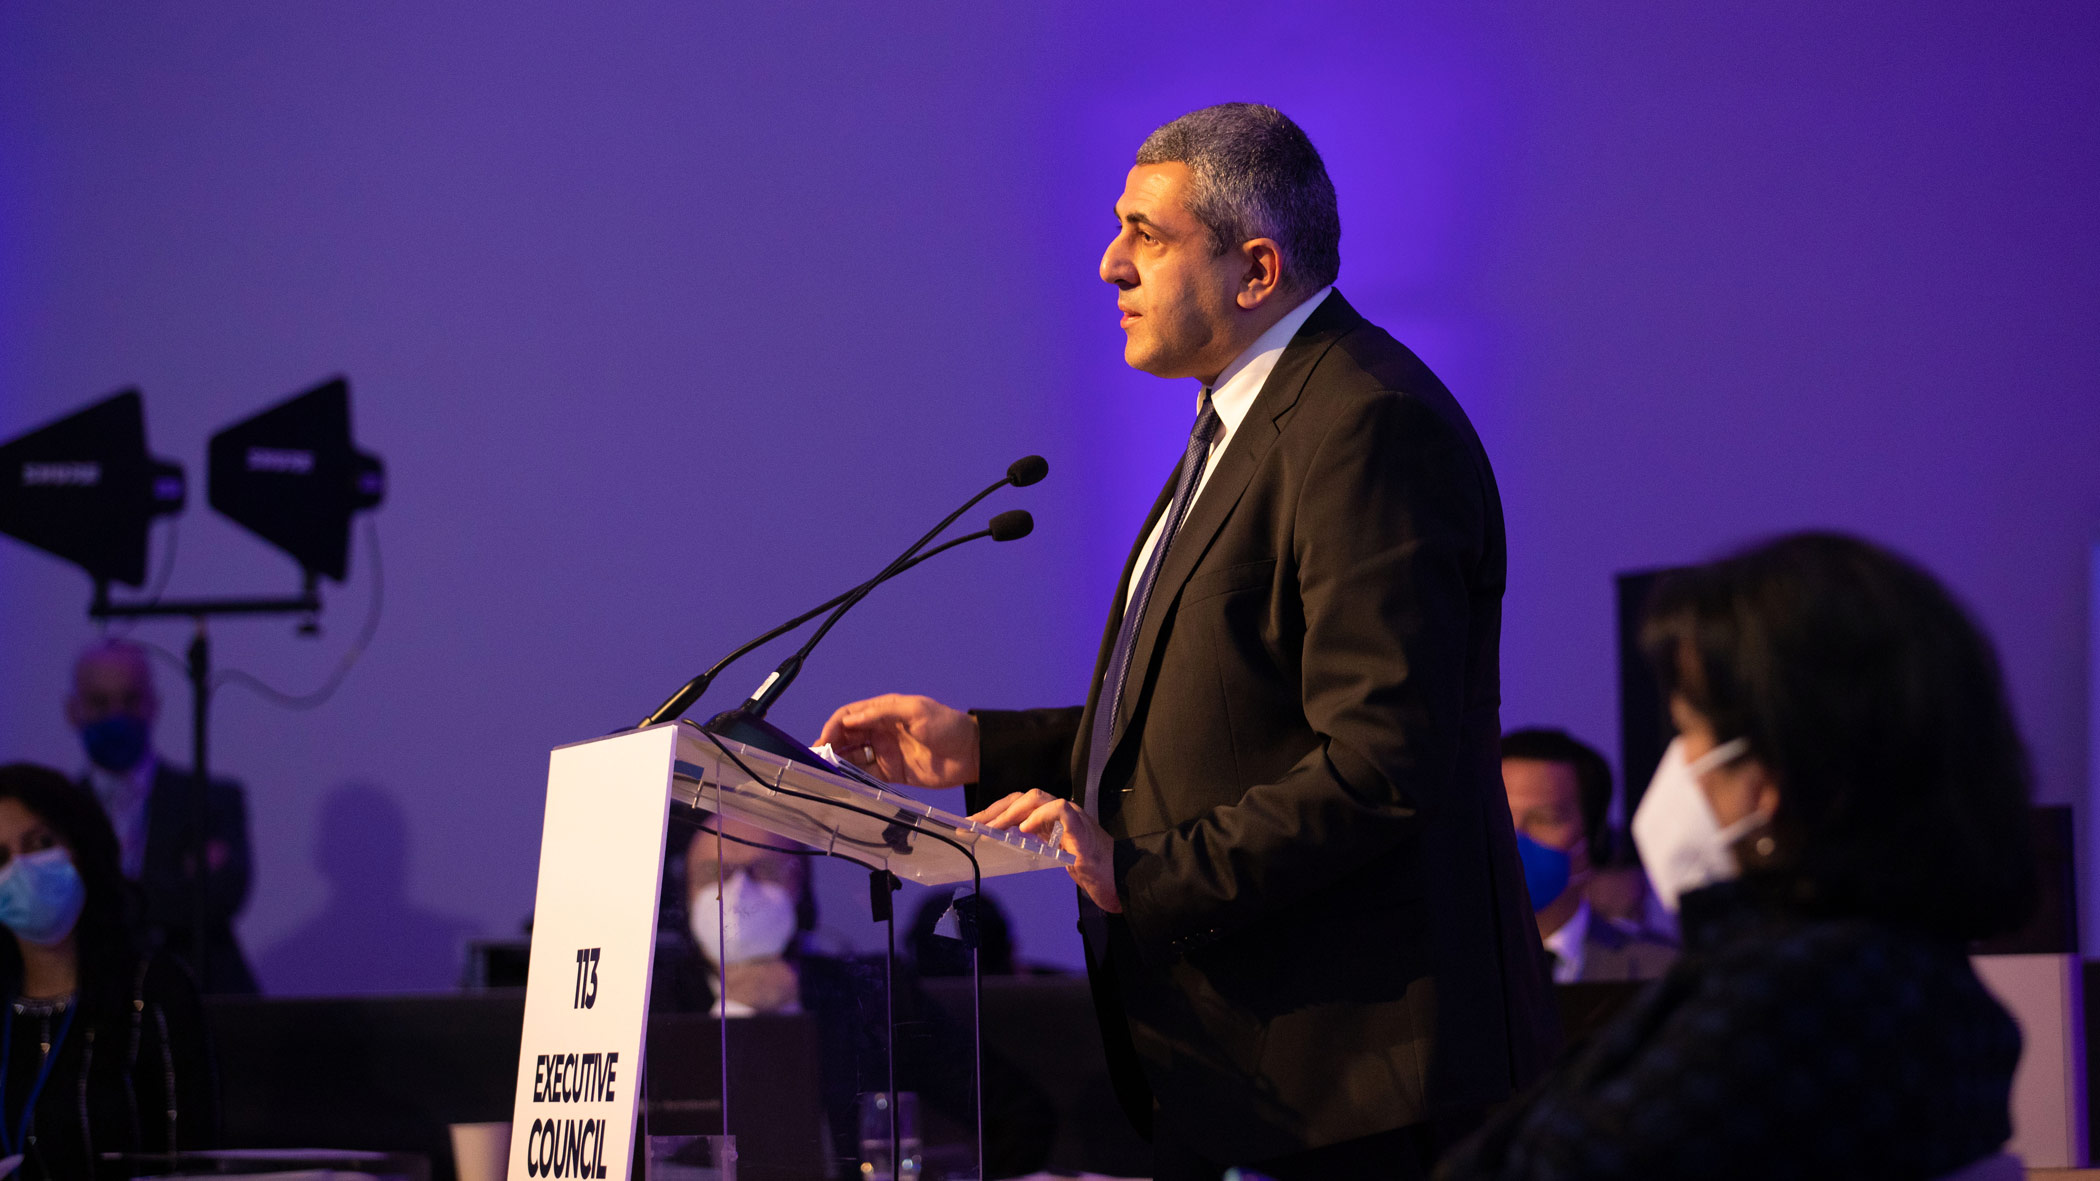 Secretary-General Pololikashvili Nominated to Lead UNWTO for Four More Years